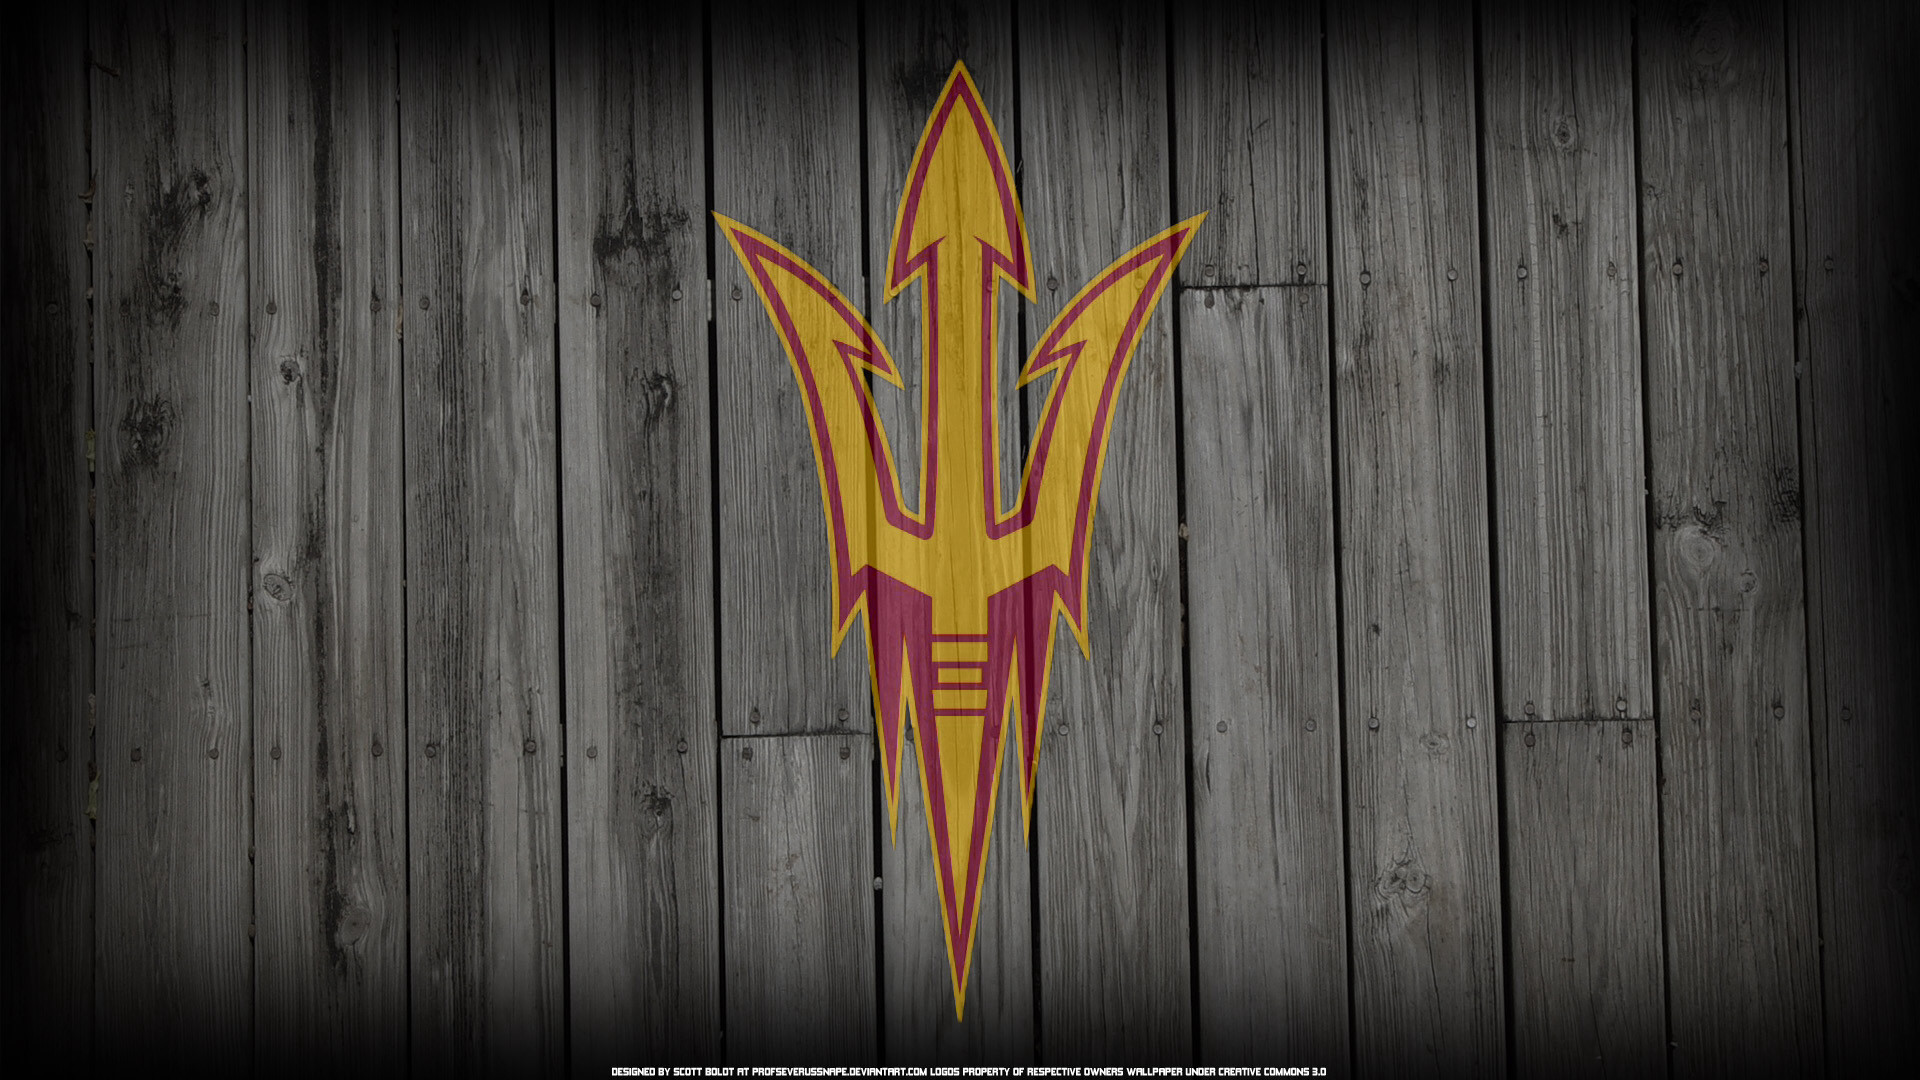 1920x1080  Wallpaper - Arizona State University Sun Devils - Wallpapers, #2  of 31